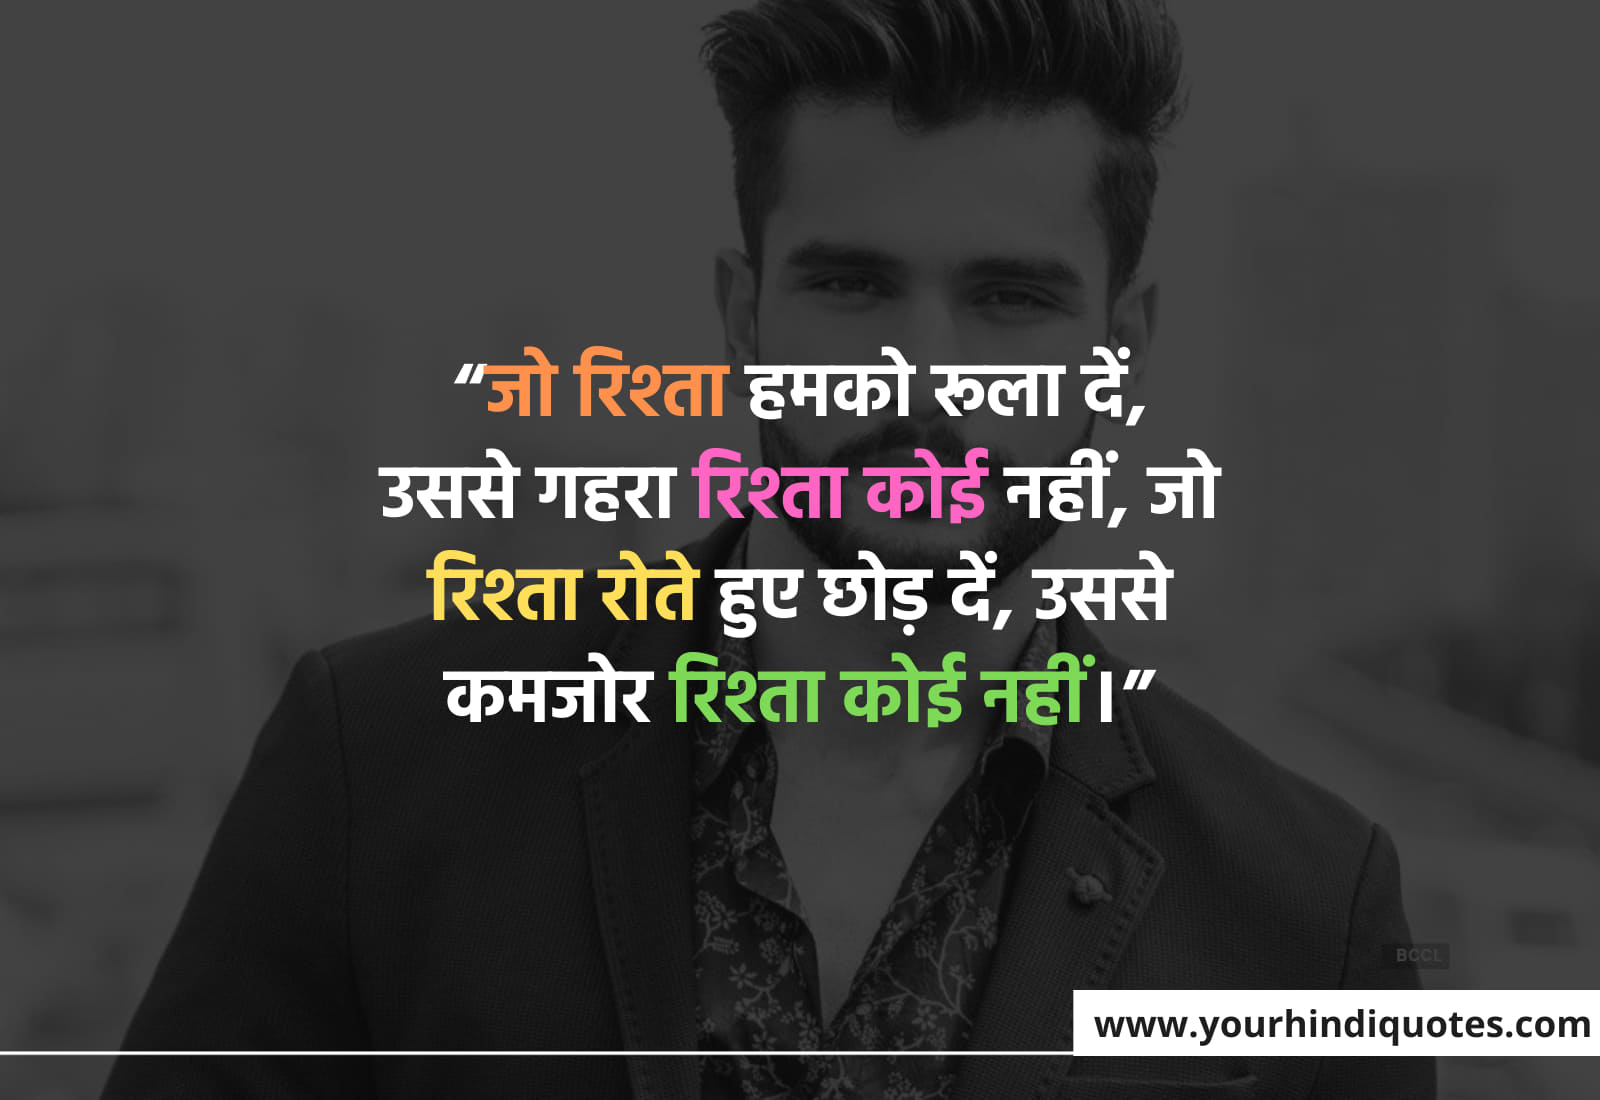 Relationship Quotes For Life